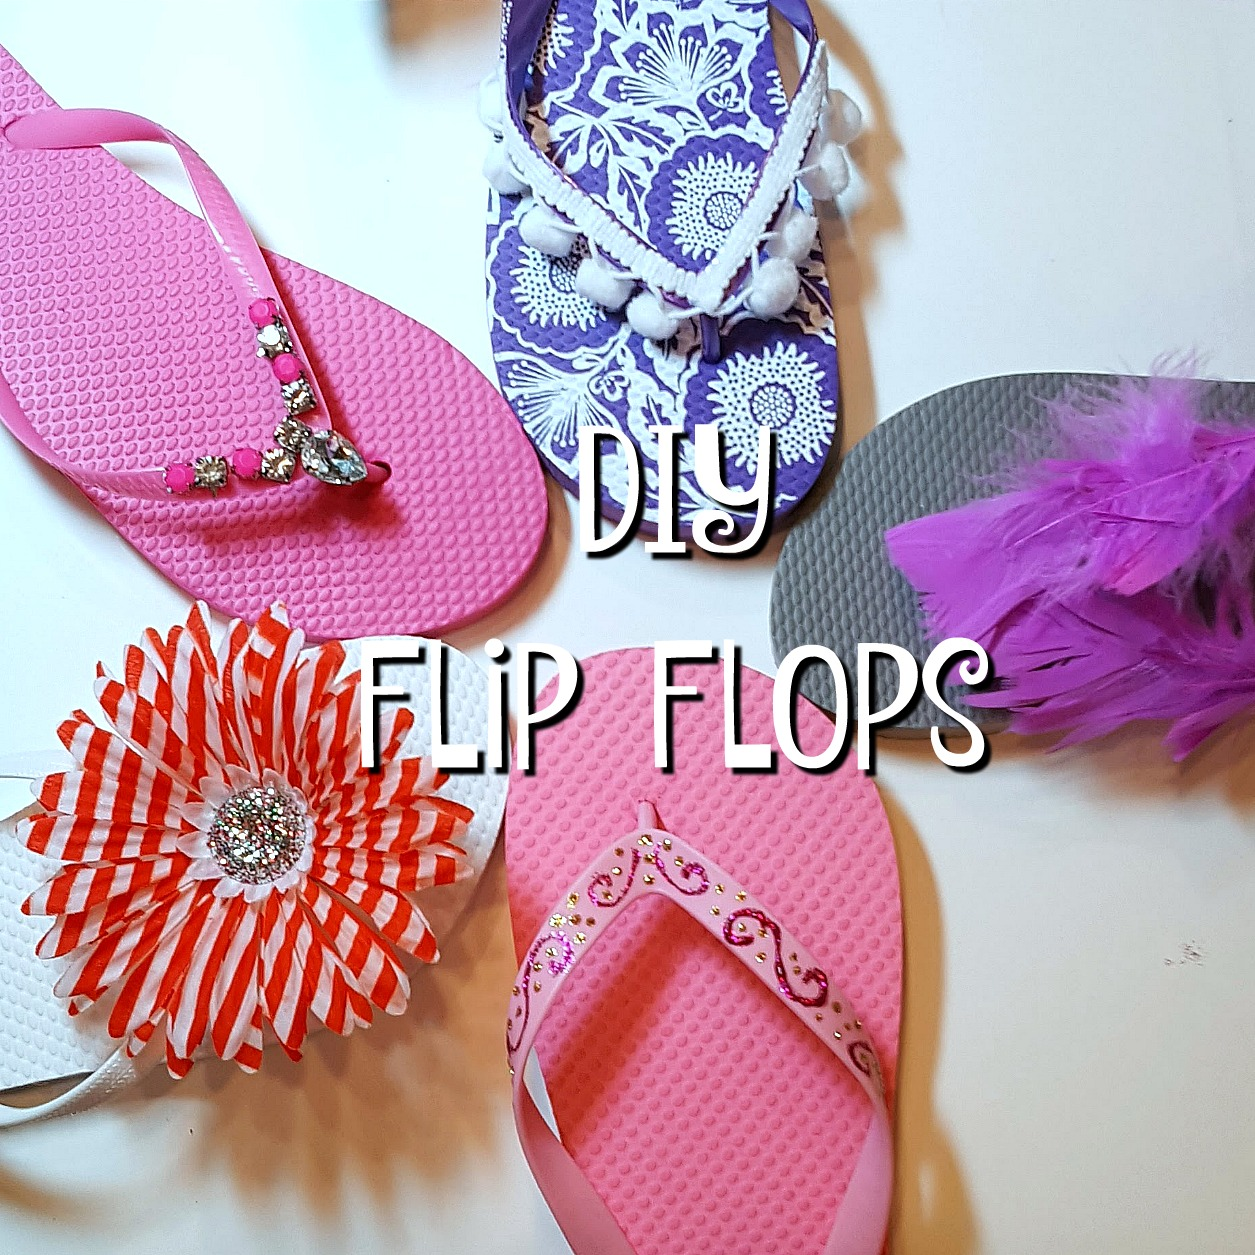 cf236b7c528 Decorate Your Flip Flops - Take Time To Create